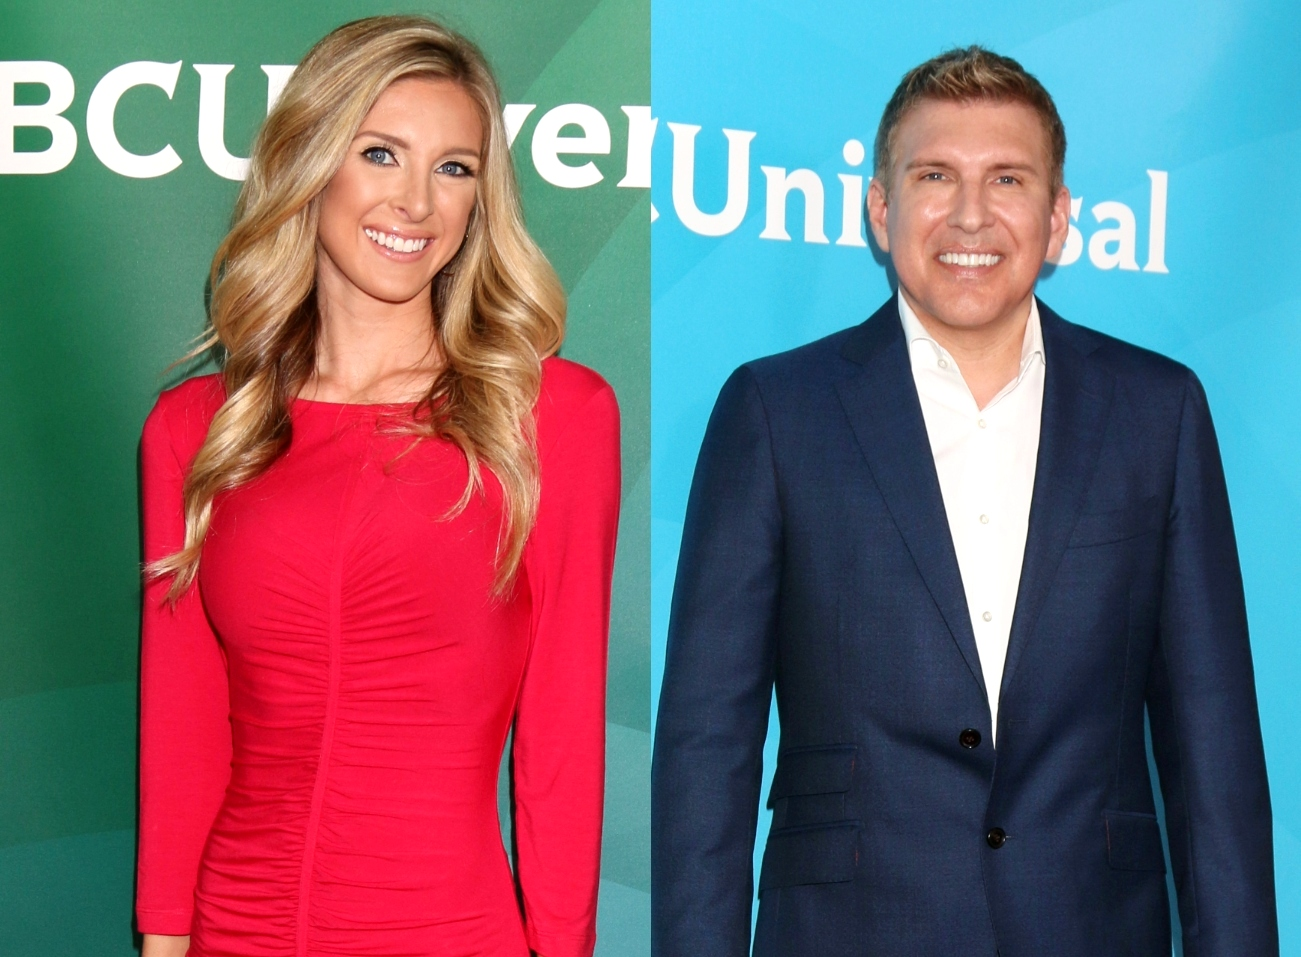 Chrisley Know Best Alum Lindsie Chrisley Says She'll Never Reconcile With Her Family And Calls Dad Todd Chrisley Out For Speaking About Her Publicly While Refusing To Talk Privately